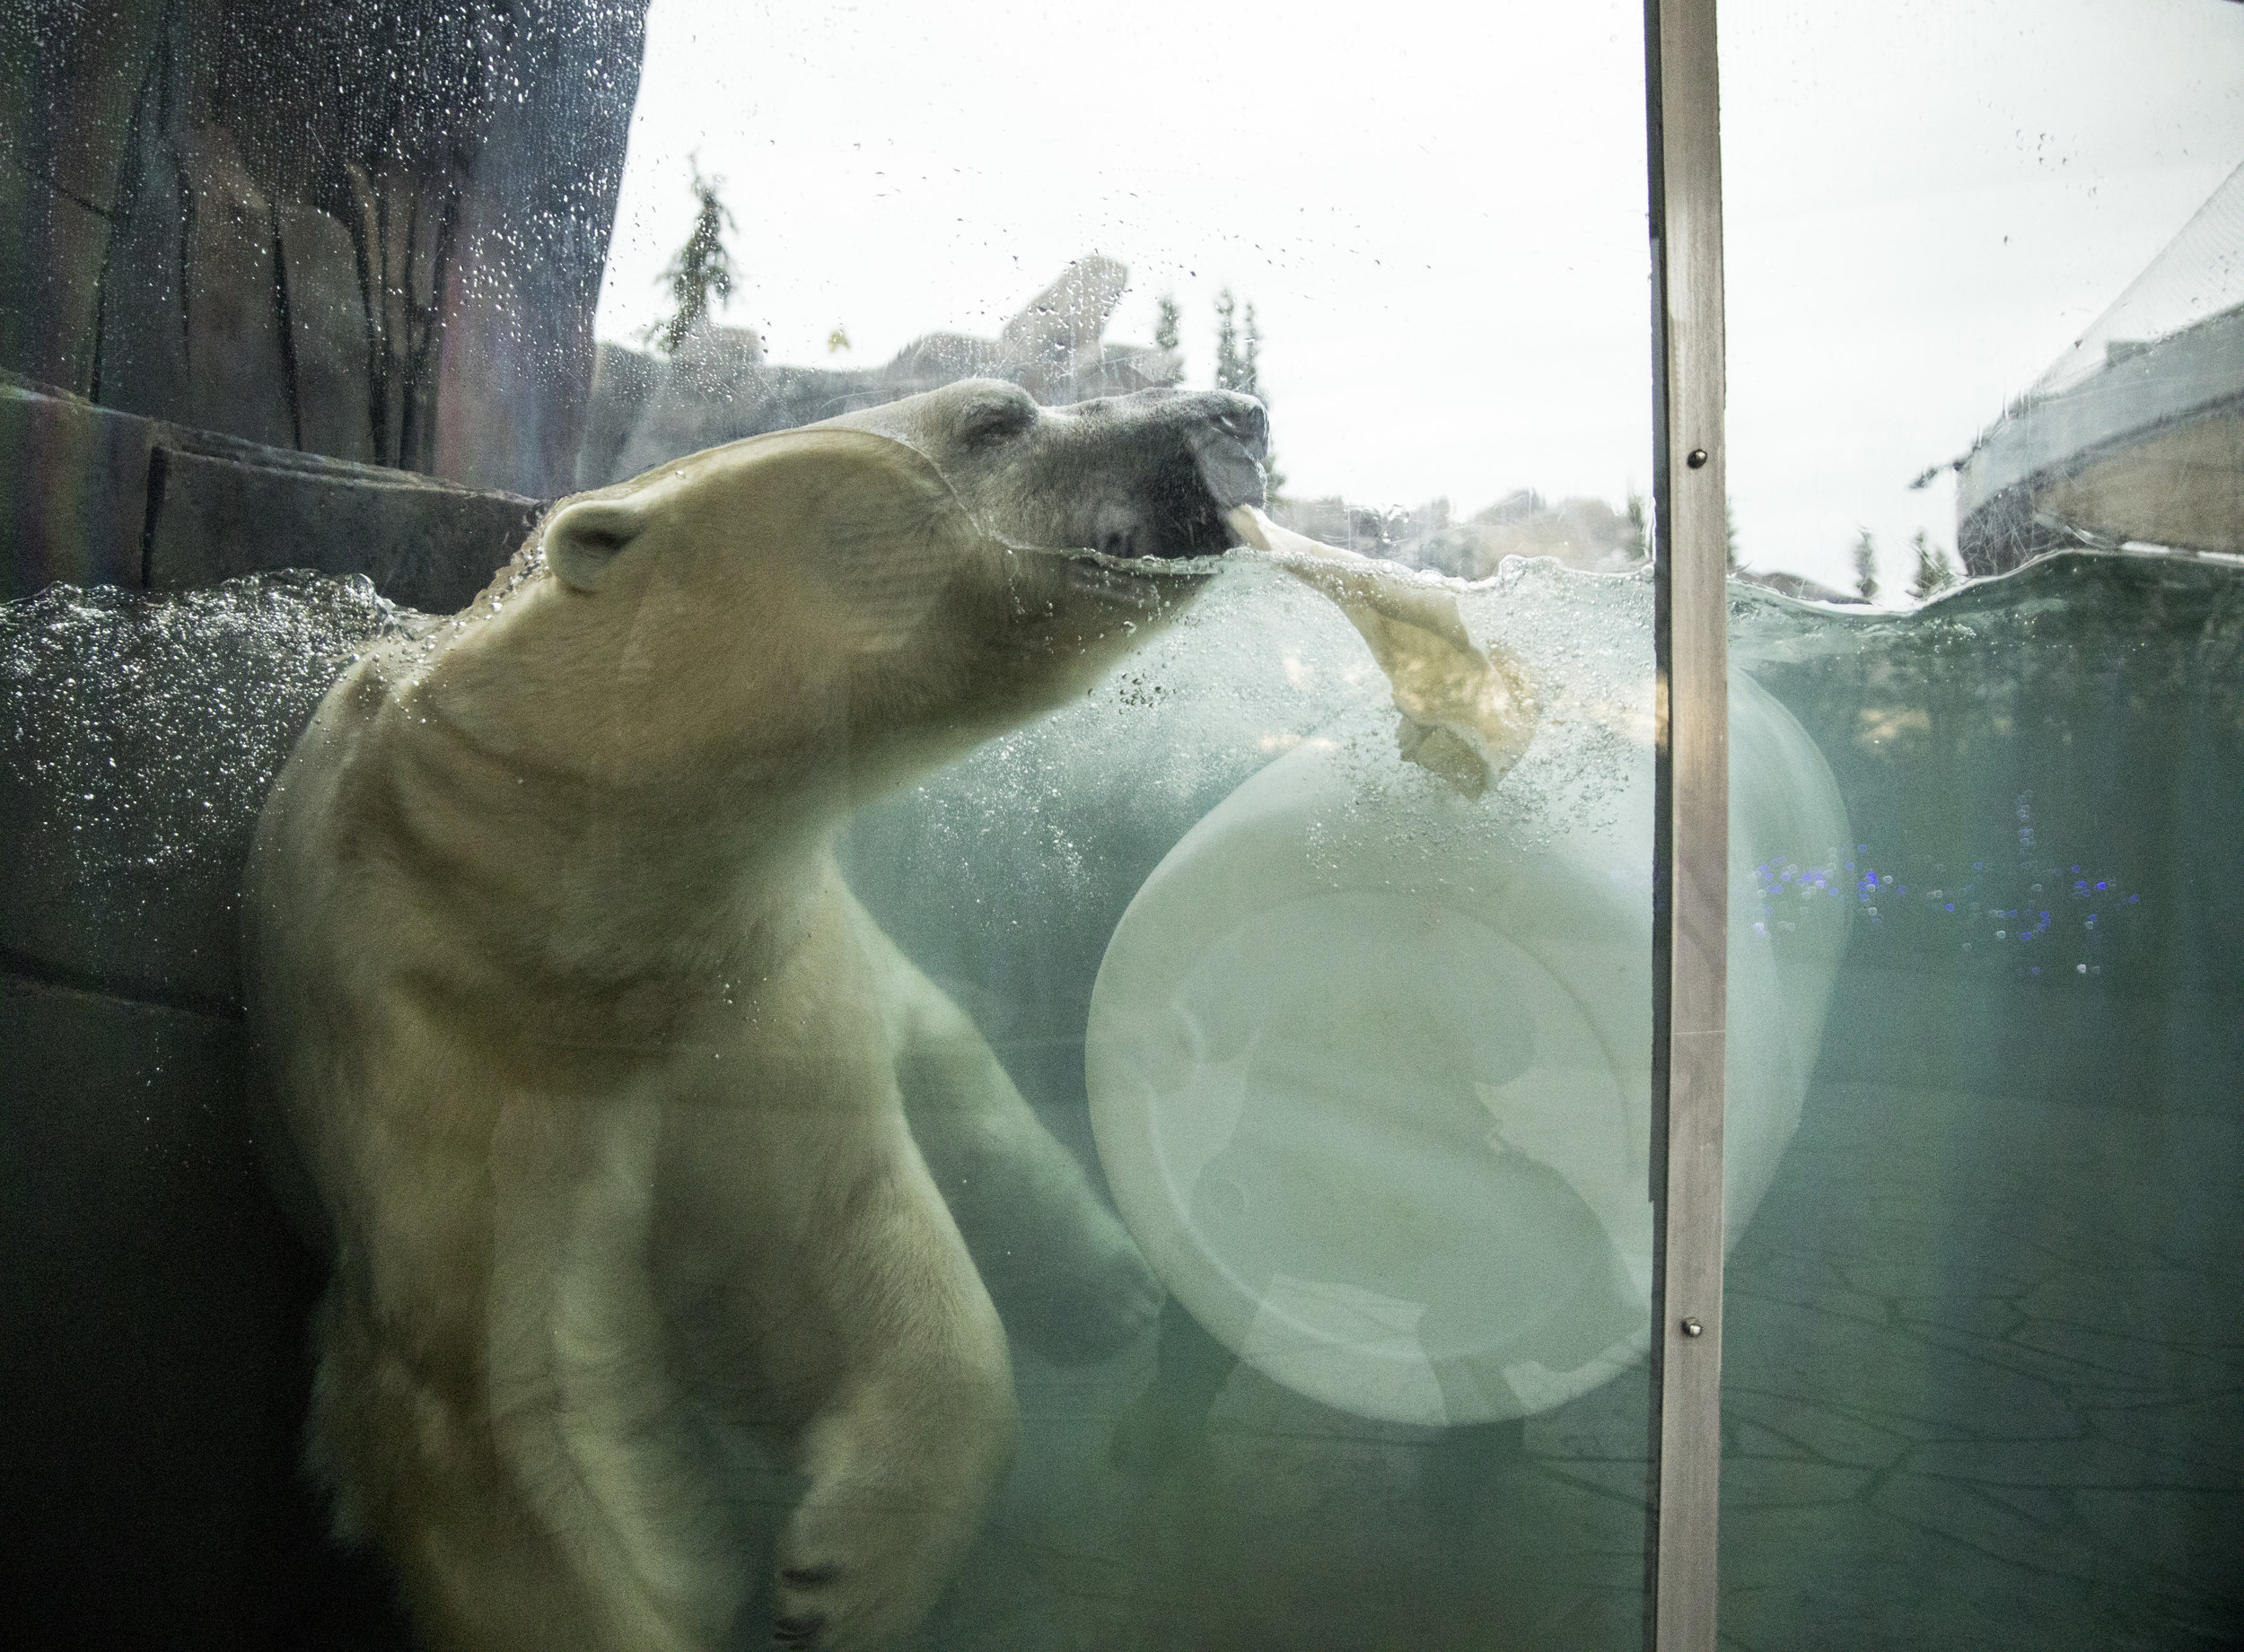 Saint_Louis_Zoo_Polar_Bear.jpg